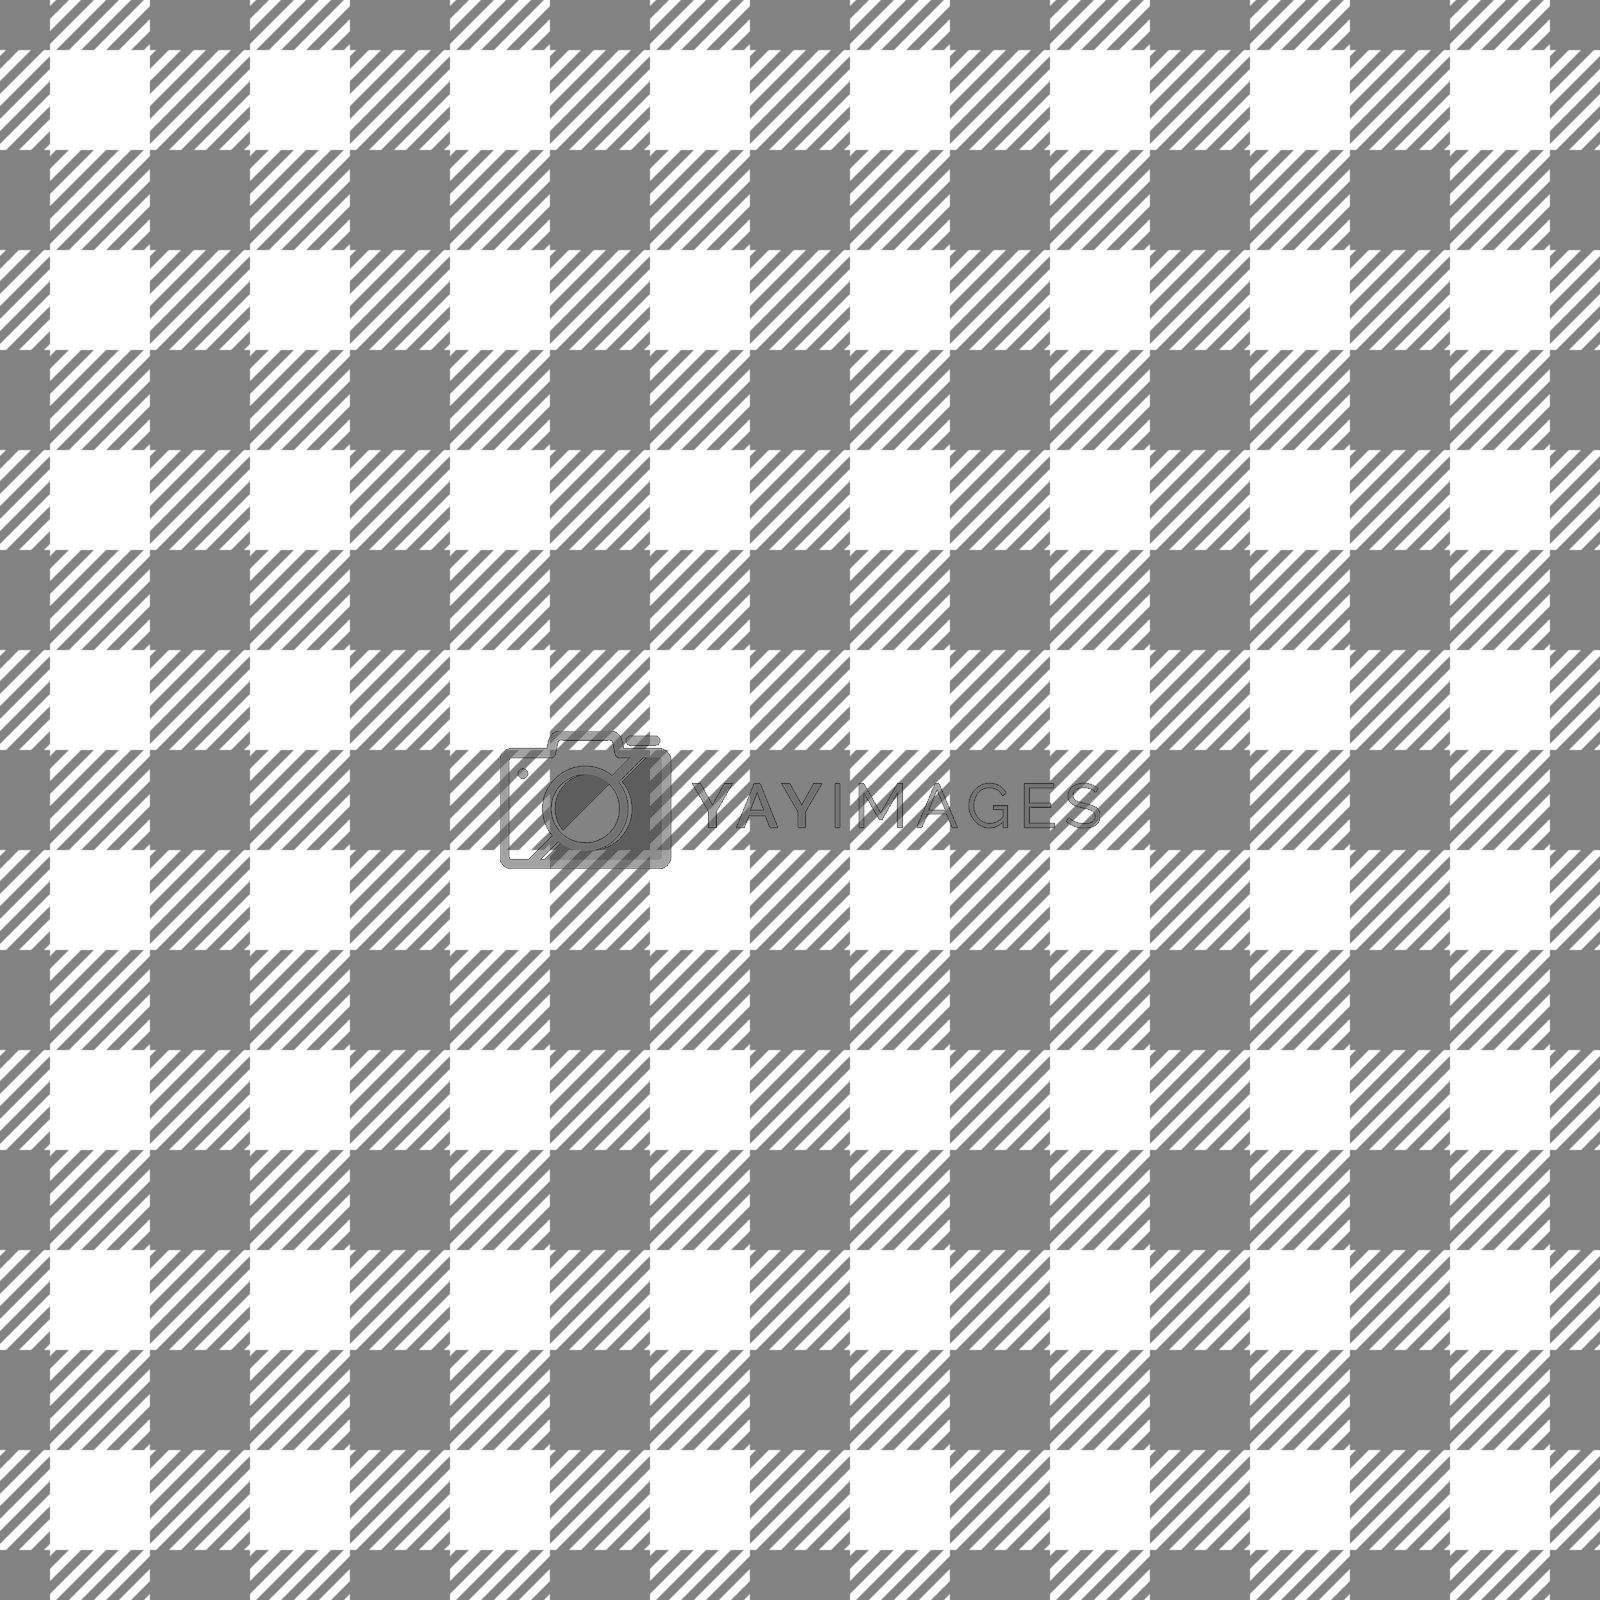 Seamless Gray White Traditional Gingham Pattern Fabric Texture